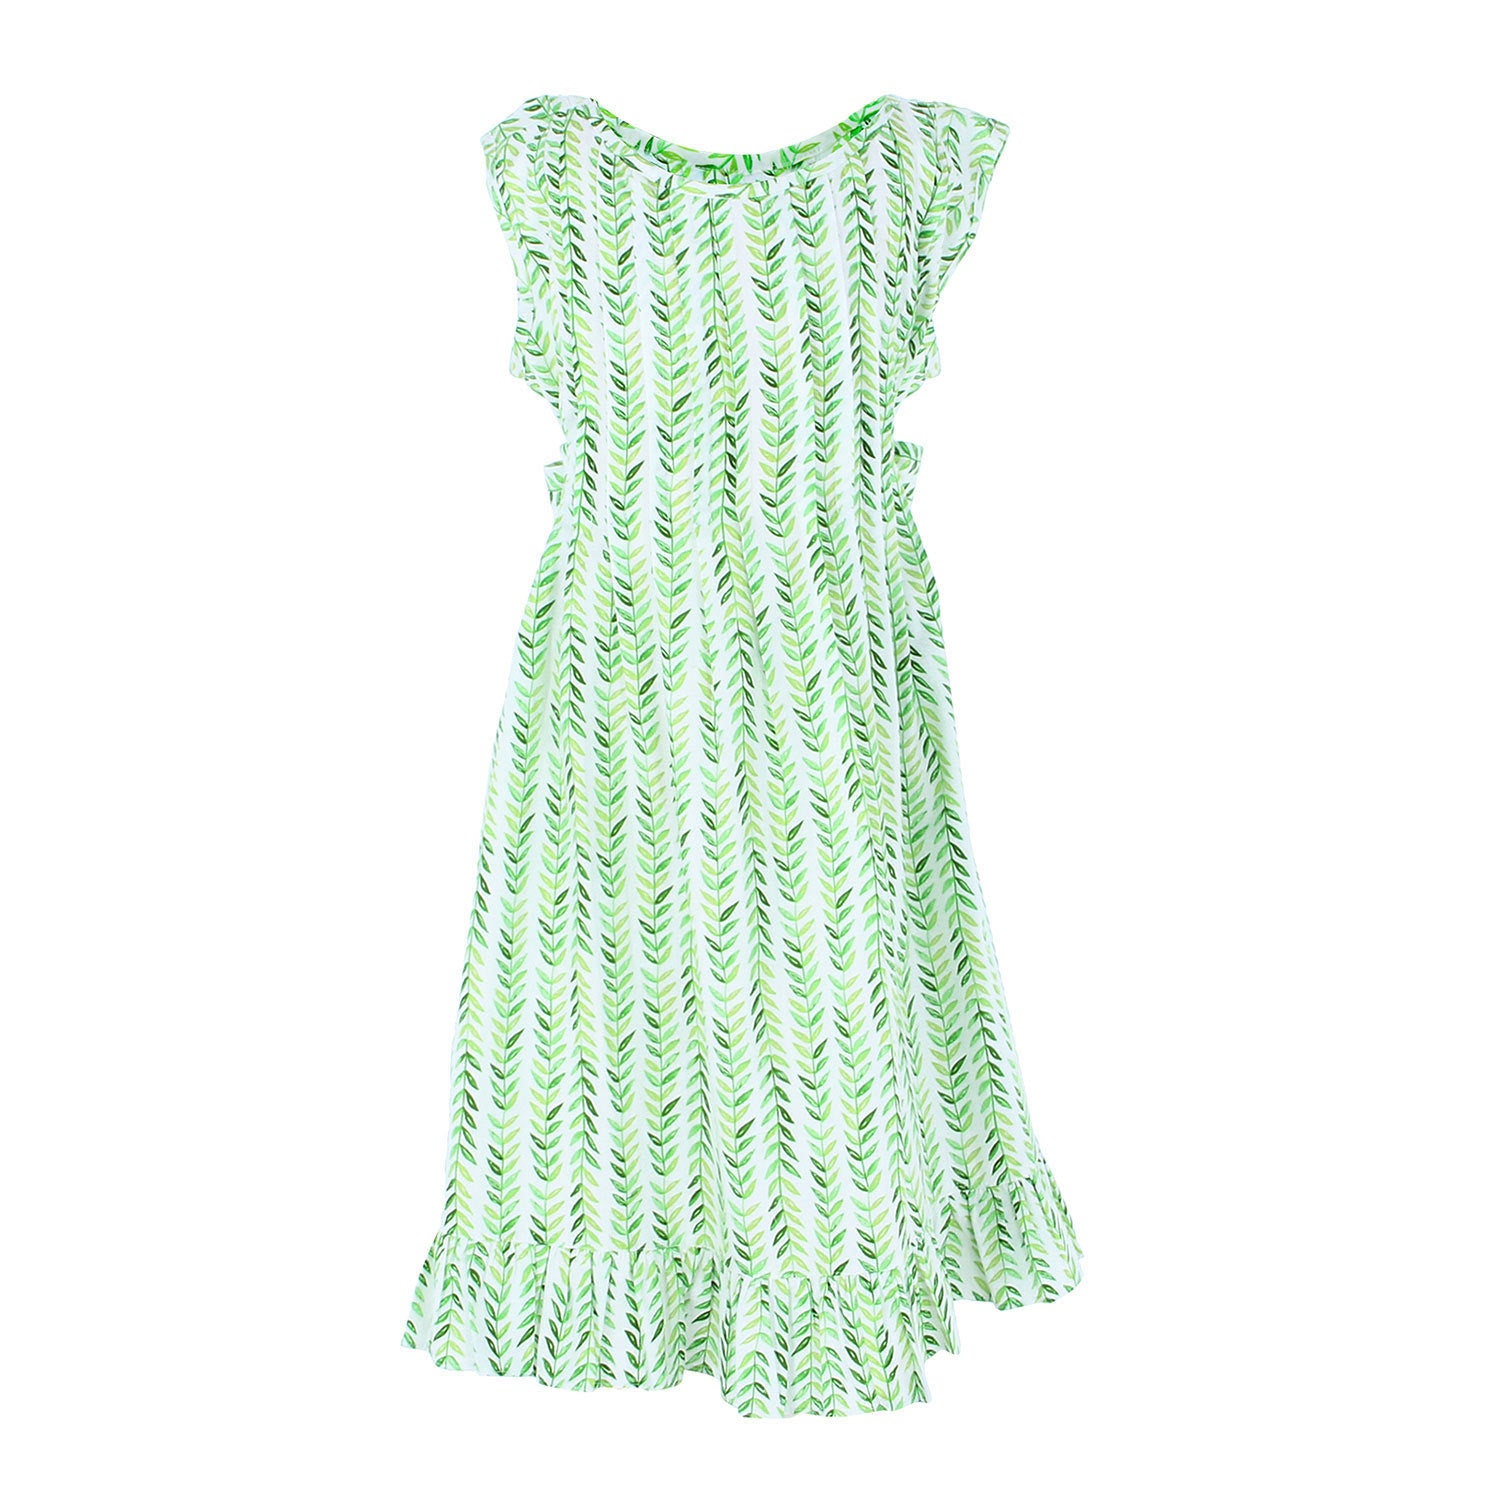 Indie Dress - Green Leaves